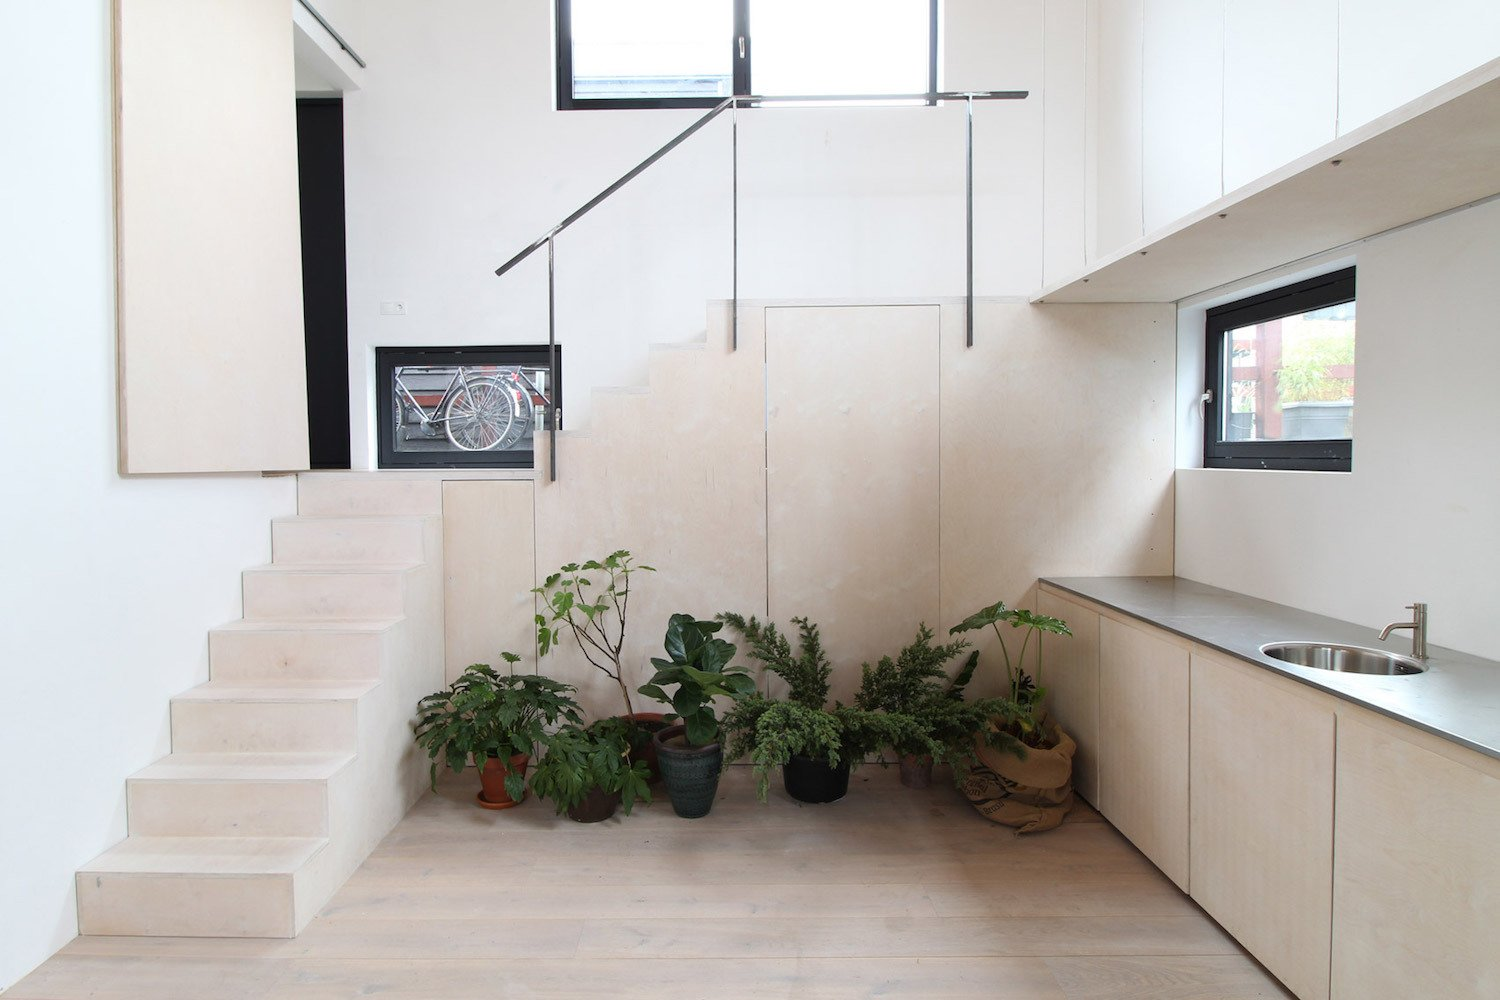 Tatami Home is a minimalist floating house located in Amsterdam, The Netherlands, designed by Julius Taminiau Architecten. The home is characterized by built-in storage and furniture in order to maximize the small space interior. The architect was inspired by traditional tatami rooms from Japan in order to guide the proportions of the internal layout. Tatami mats have similar proportions to plywood panels, which were used abundantly throughout the space. An open staircase serves as a partition separating the the living area from the dining room and kitchen.  Interiors